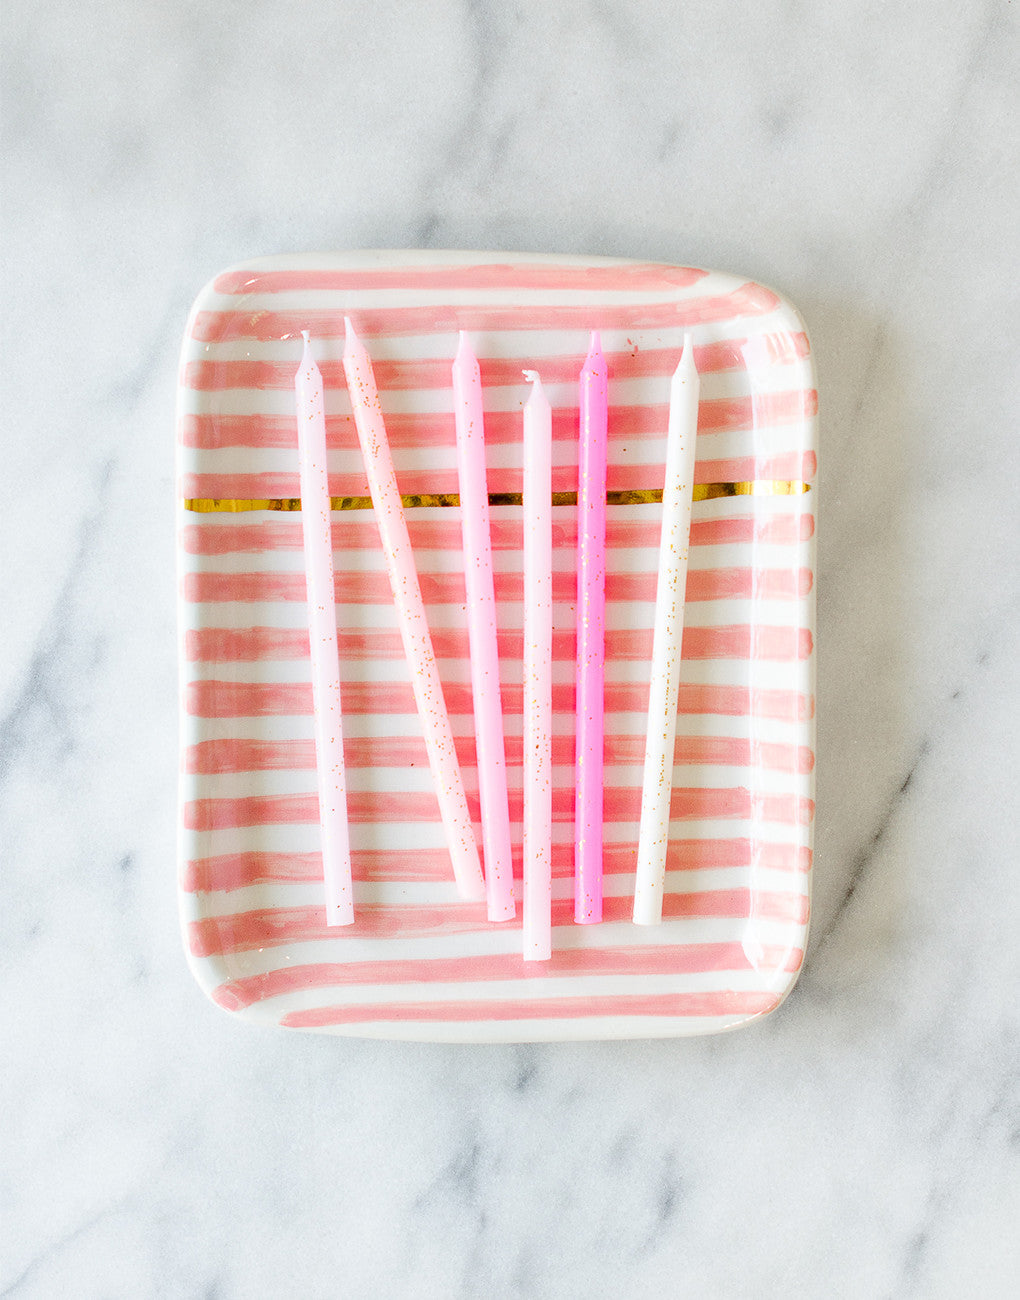 Fair Trade Handmade Ceramic Pink Striped Tray